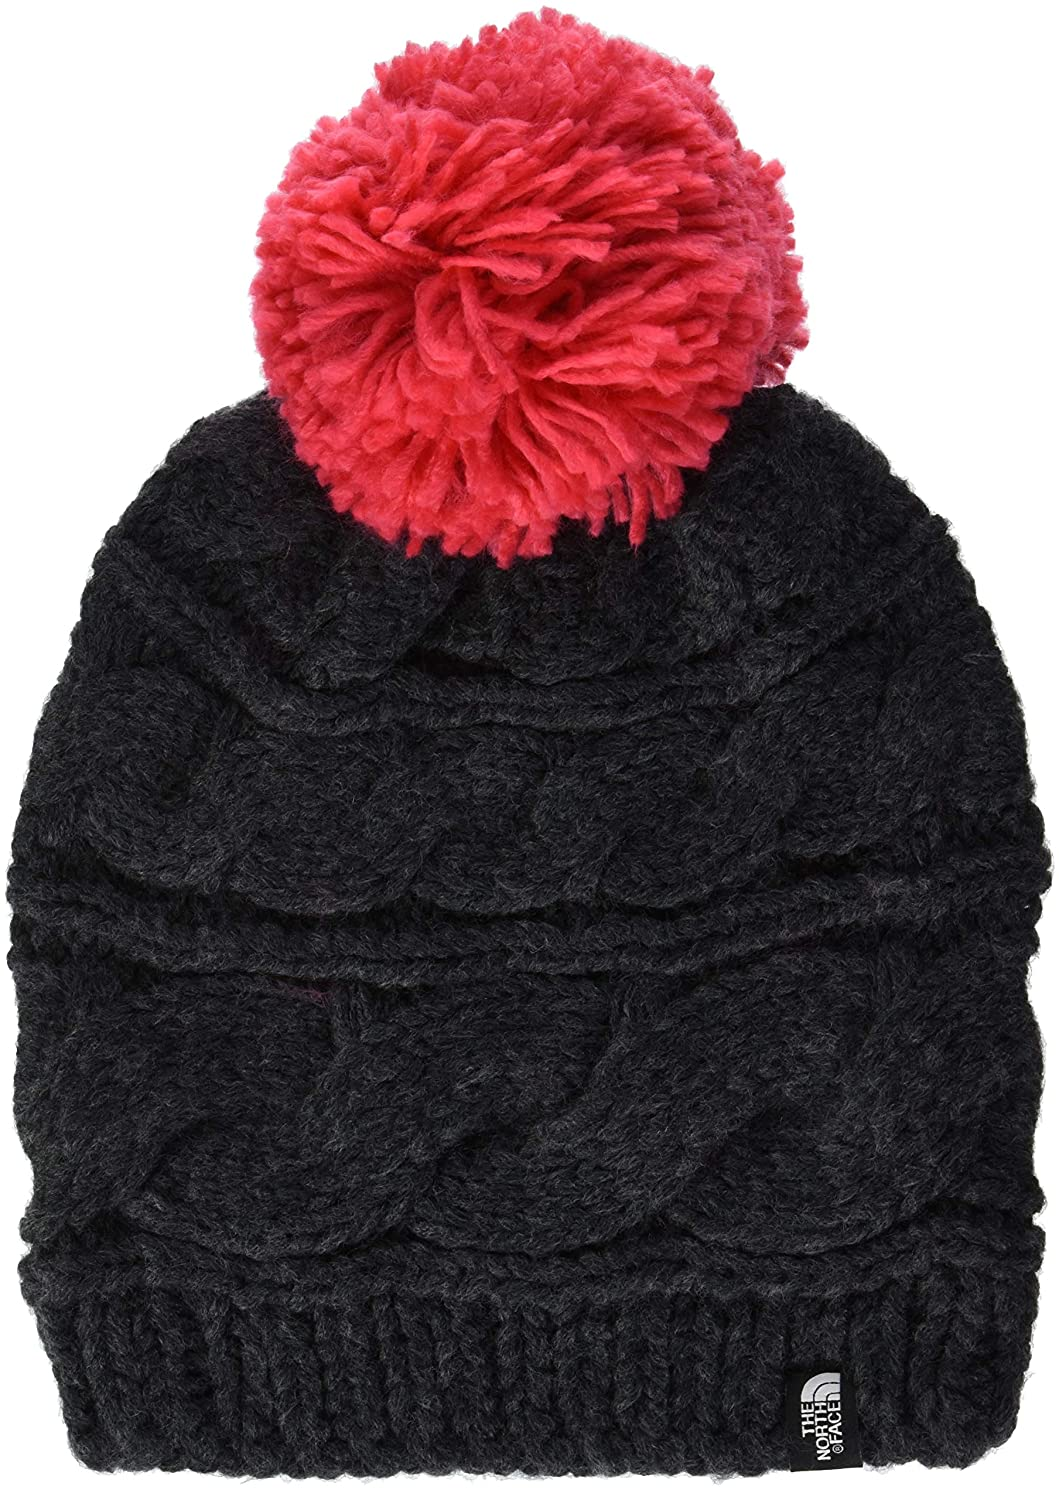 bbdc3747ec4 The North Face Women s Triple Cable Beanie - Fig - OS at Amazon Women s  Clothing store